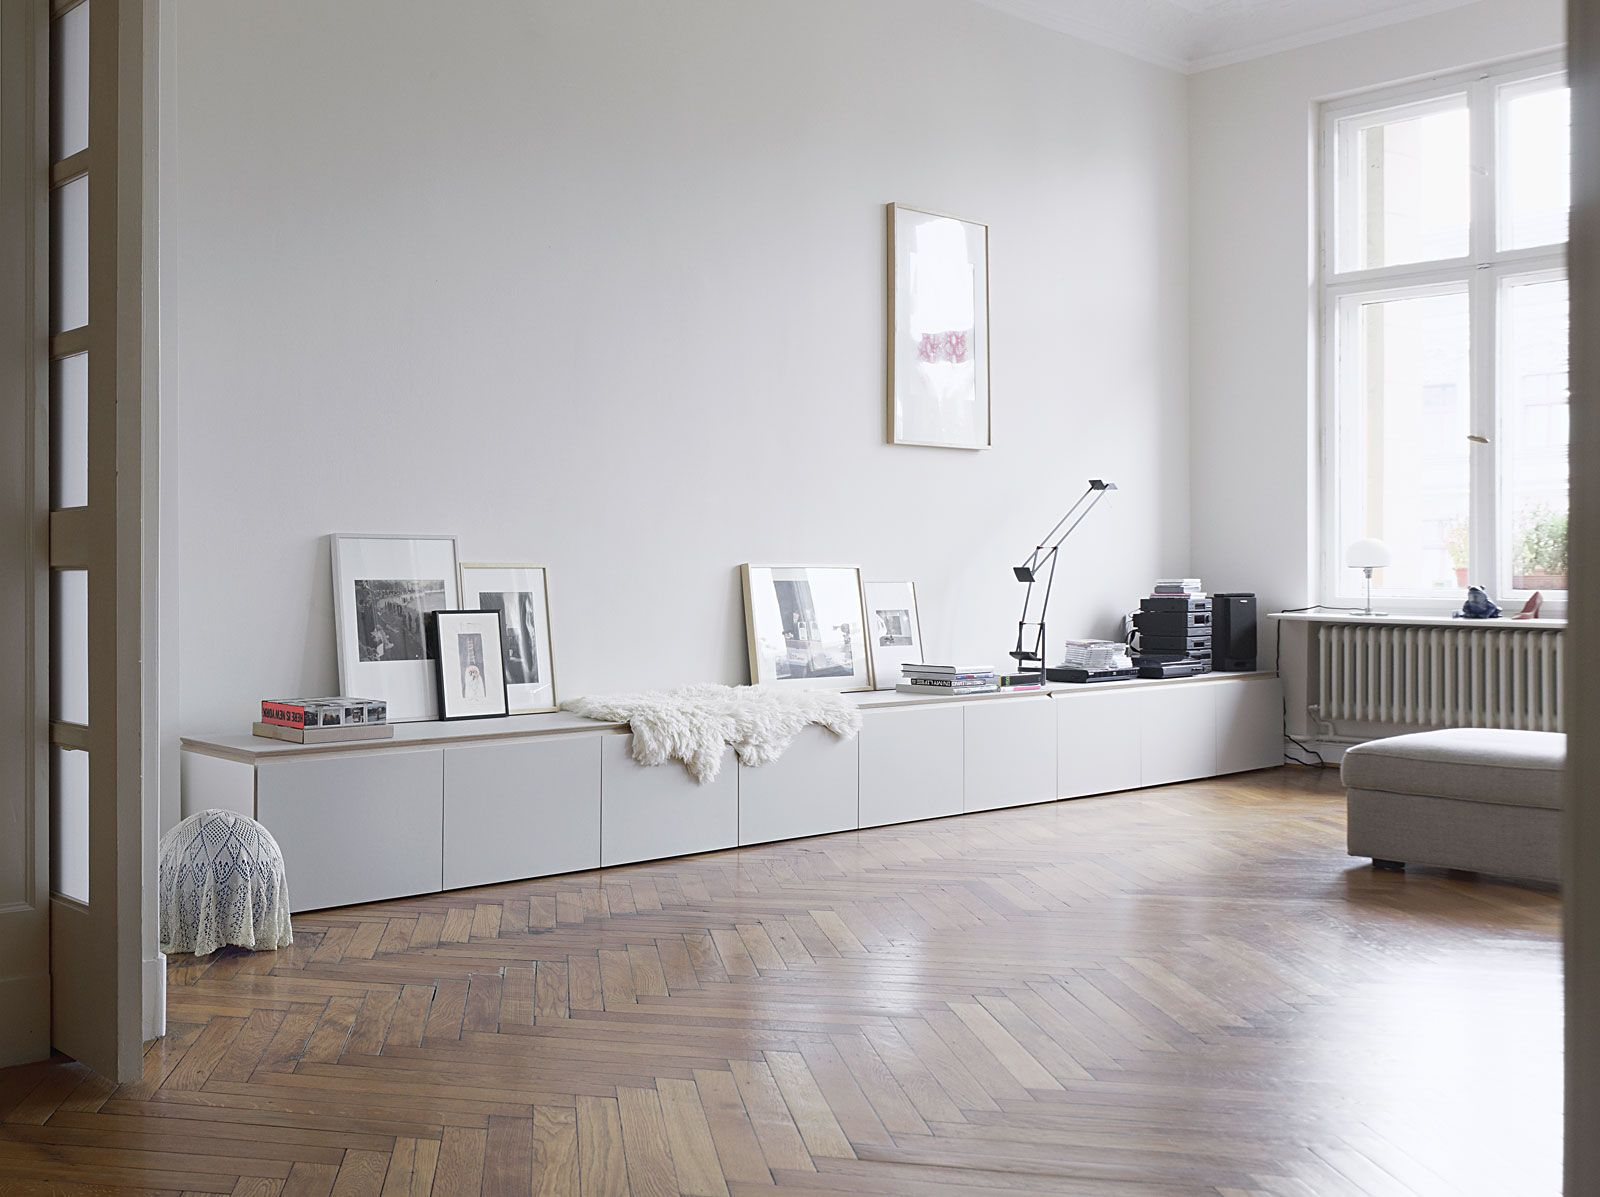 Long Clean White Storage   Ikea Besta May Work For This Look · Living Room  ...